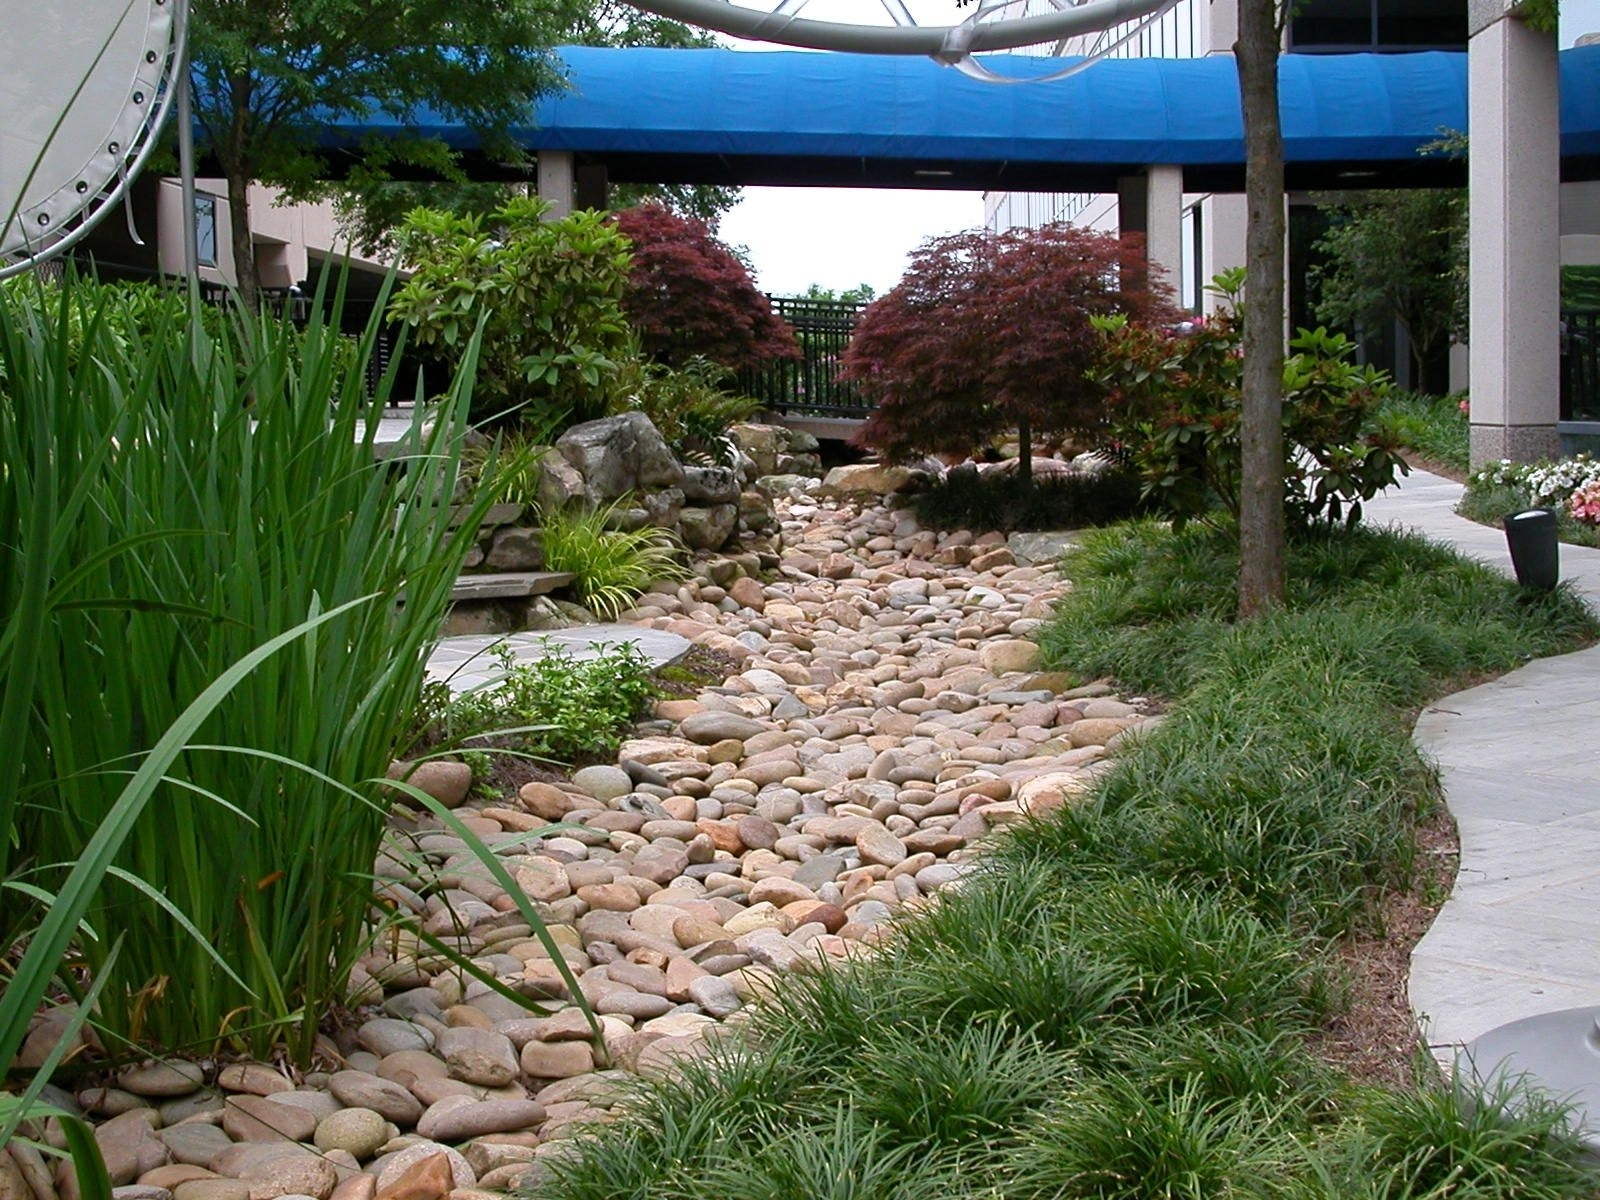 River Rock Drainage Ditch Landscaping Ideas — Randolph ...